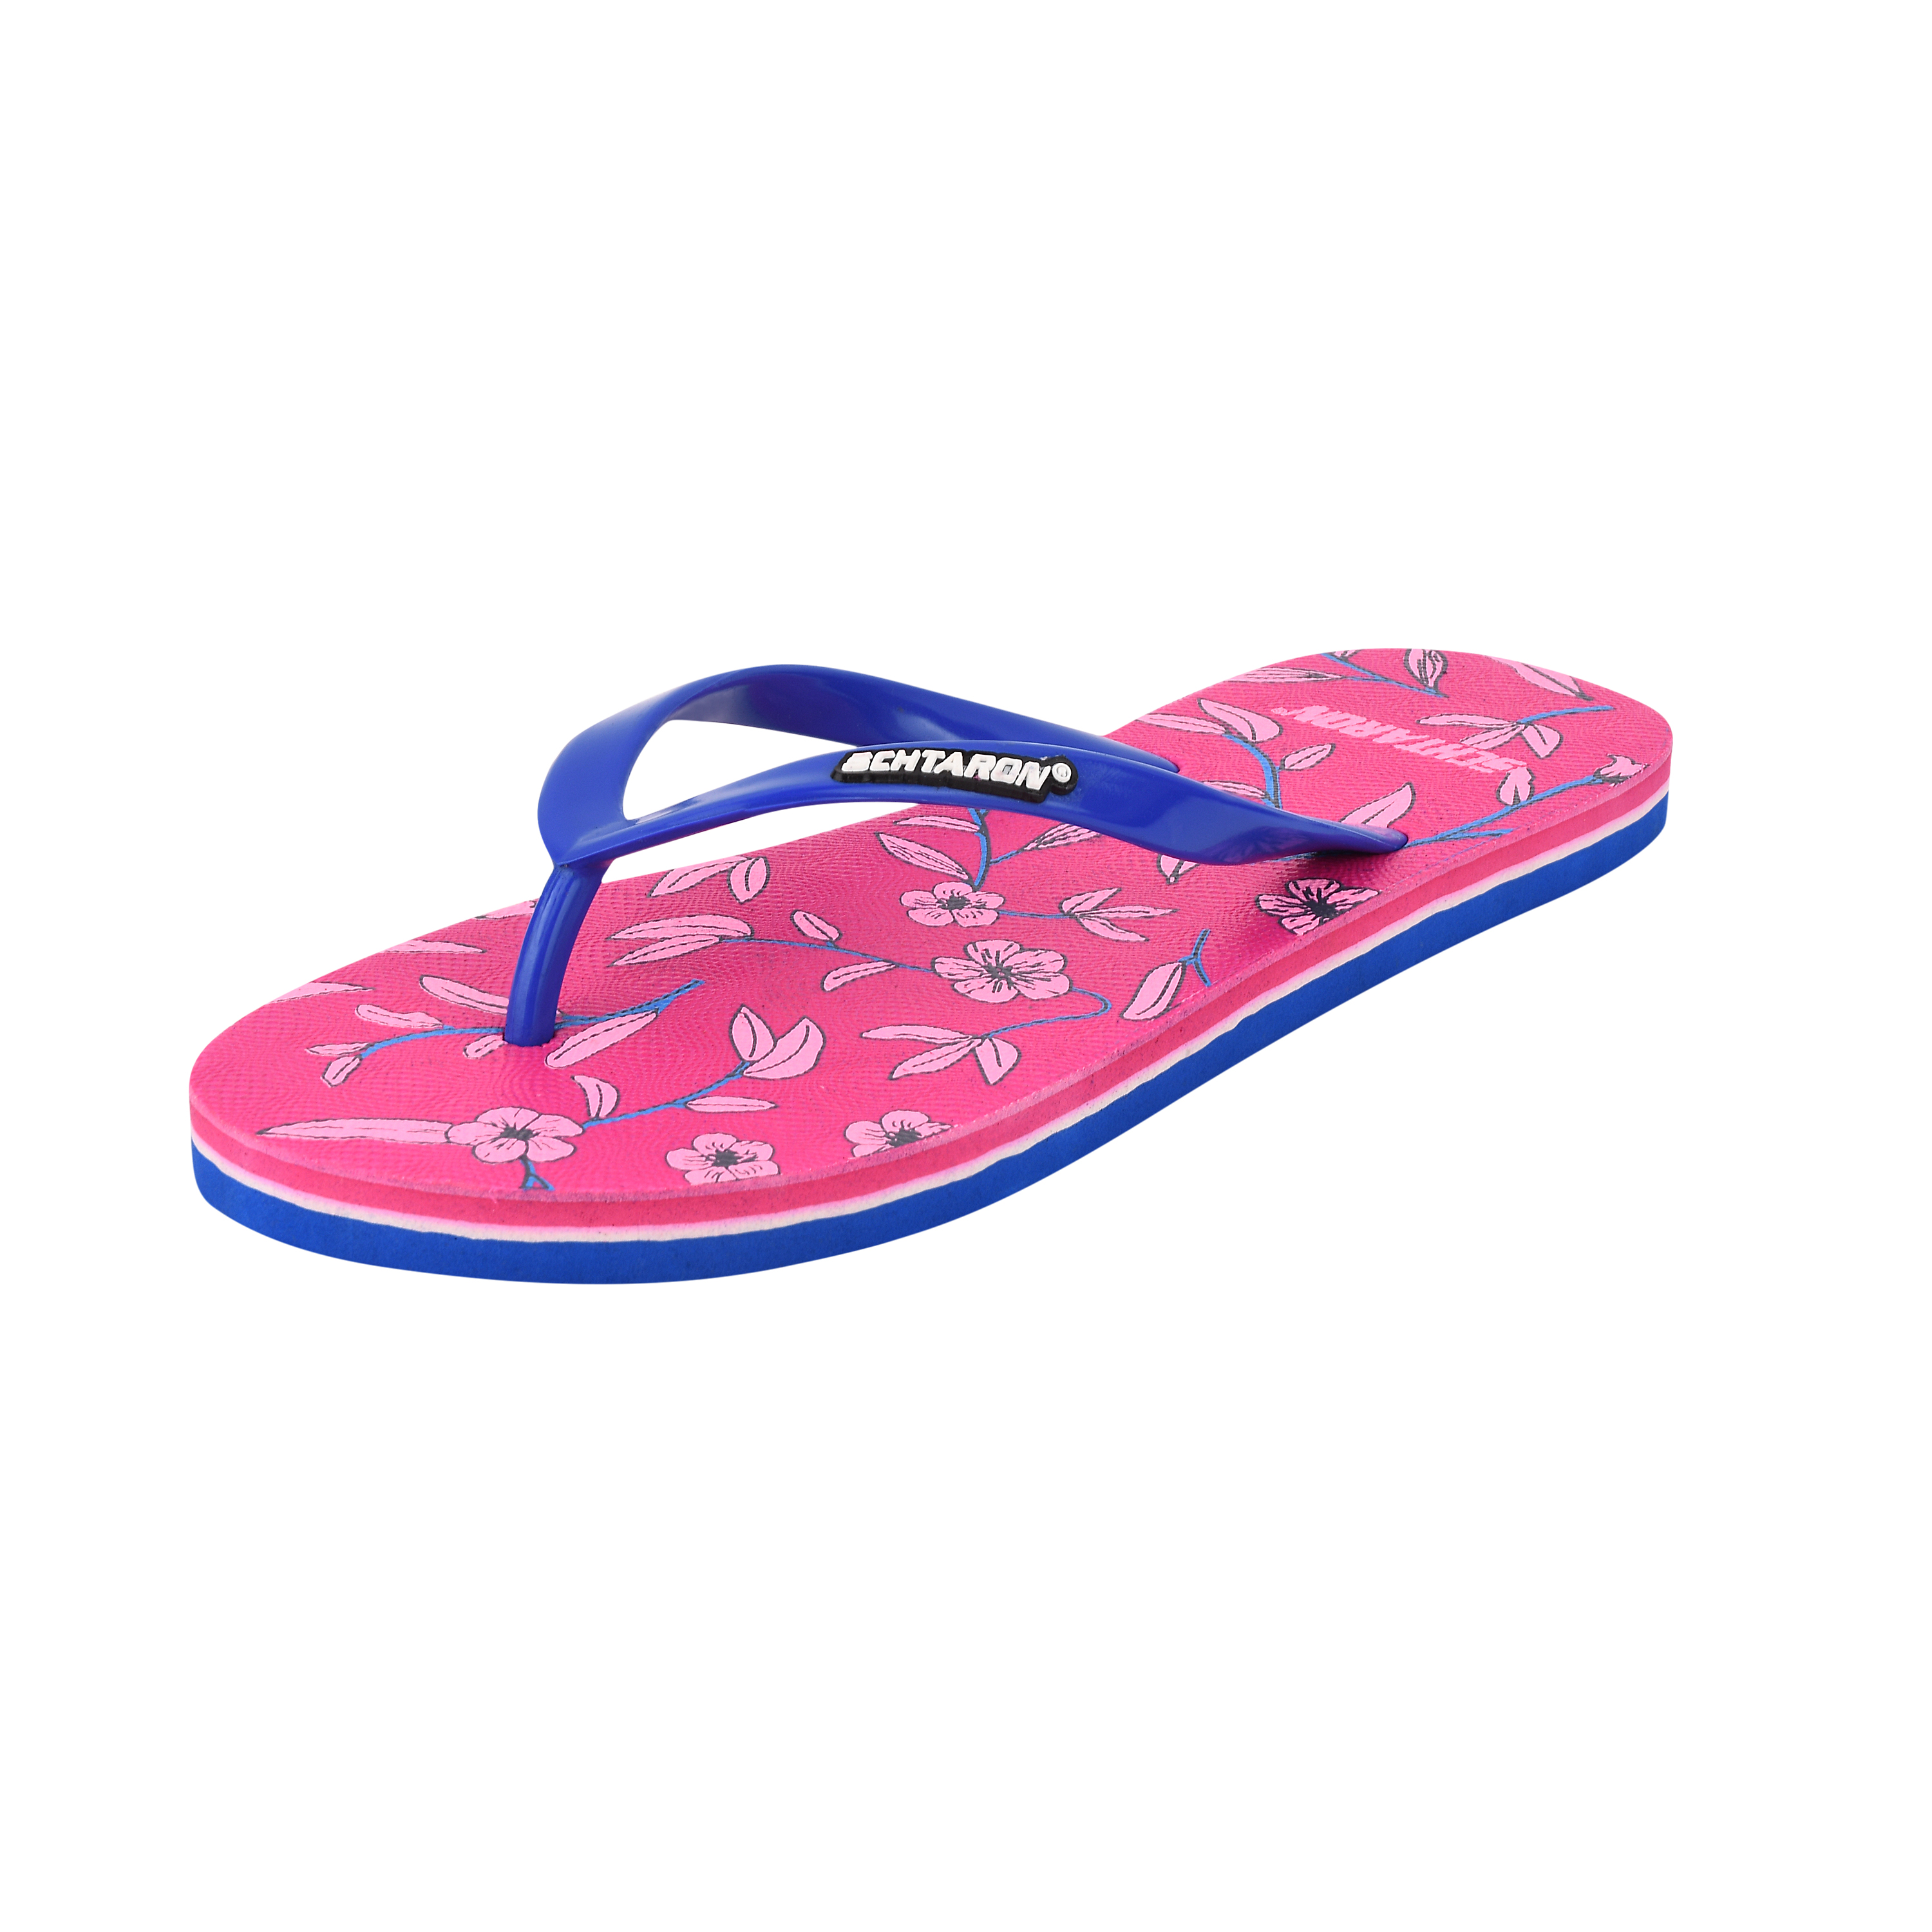 Parmar Trders Stylish Kids's Sandals ,comfortable And Reliable For Articals 502 Pink.Navyblue (pink.Navyblue, 4-7, PAIR'S)